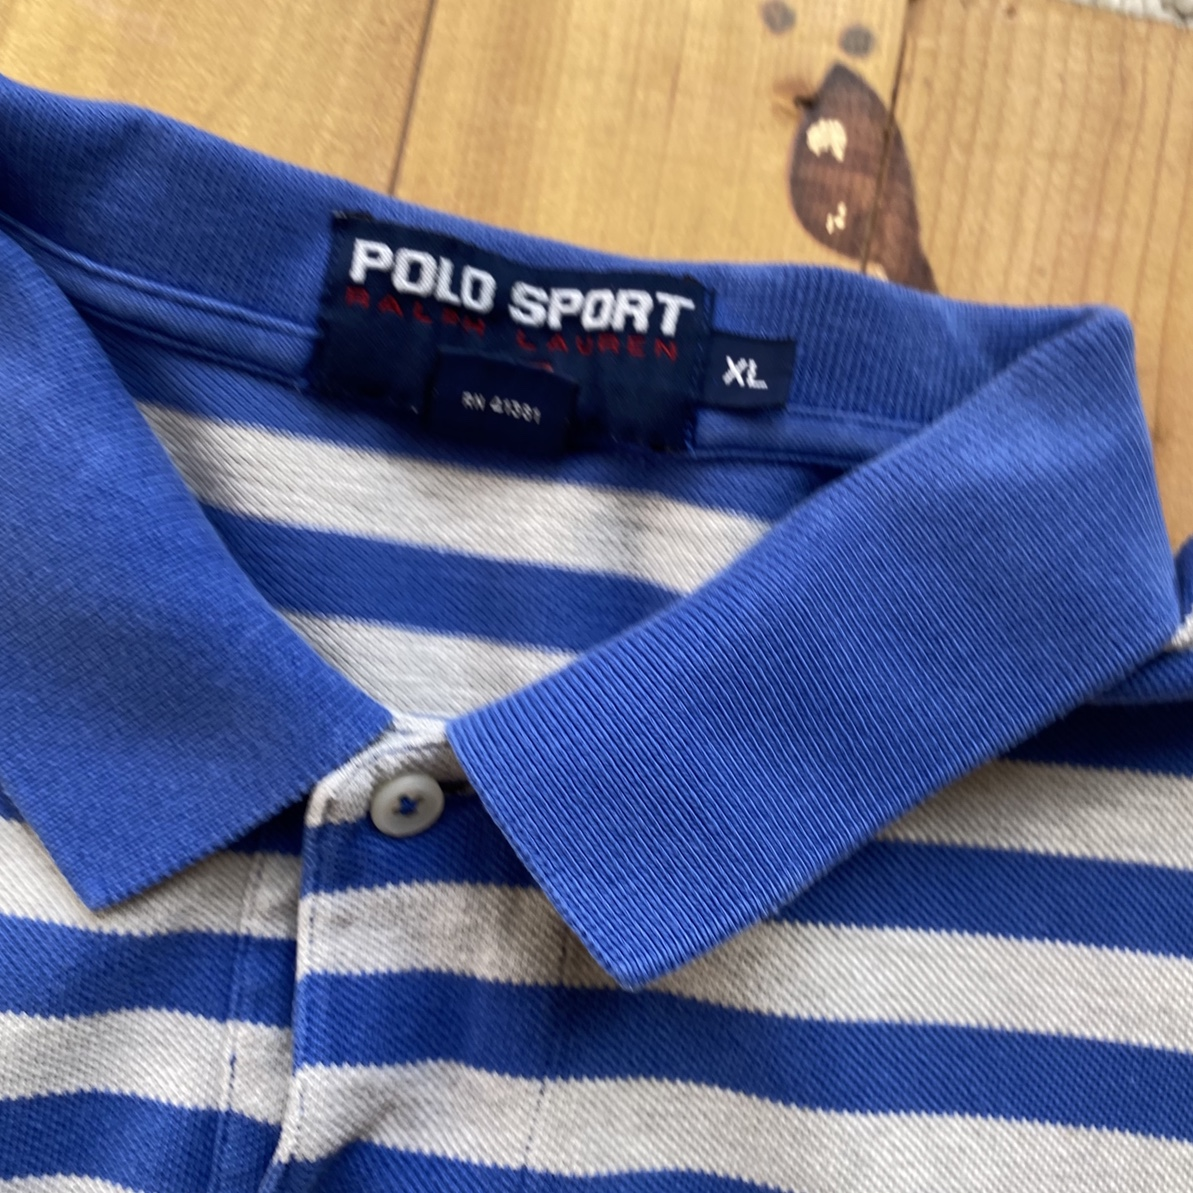 Product Image 3 - Ralph Lauren polo polo sport